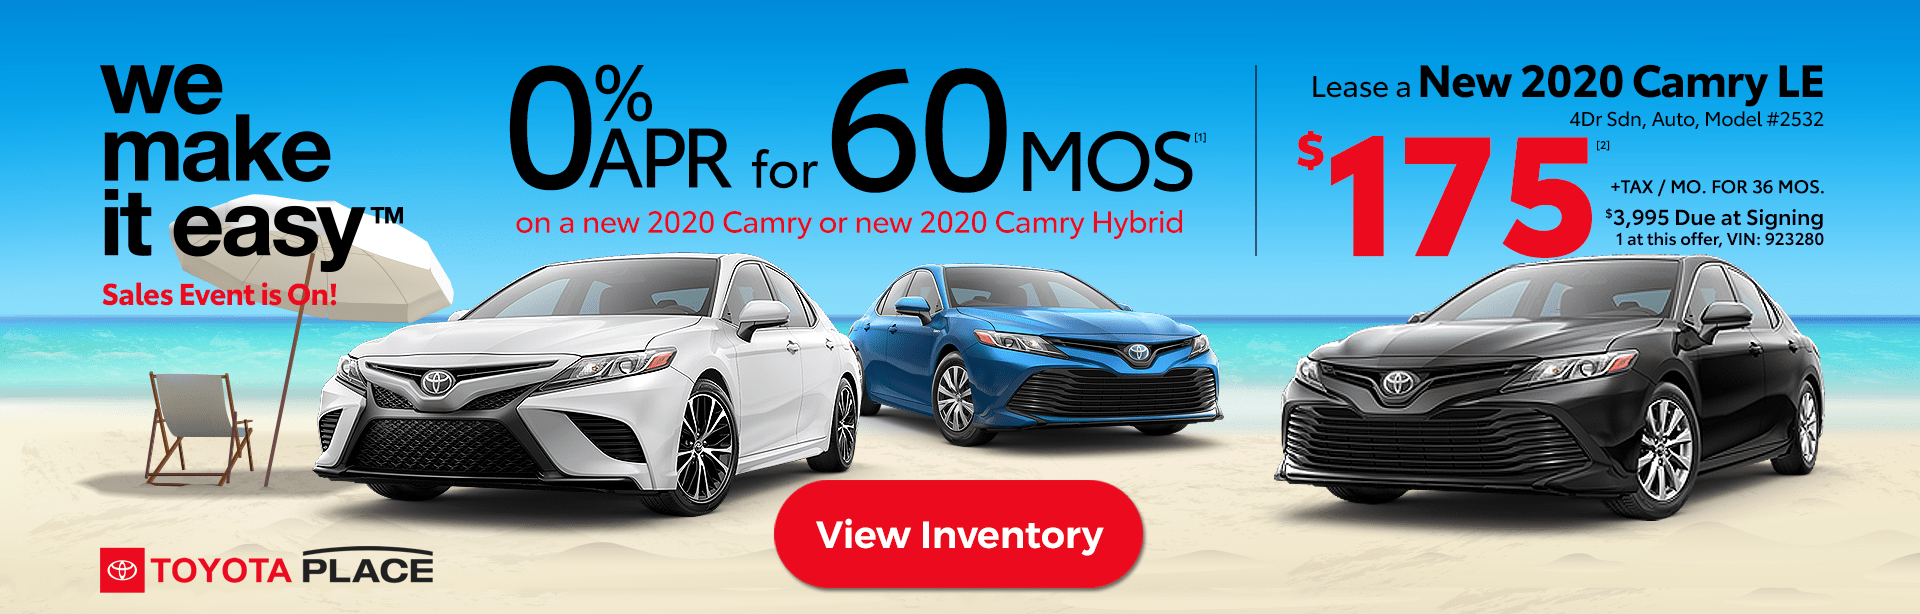 We Make it Easy Sales Event Camry and Camry Hybrid Deals Lease